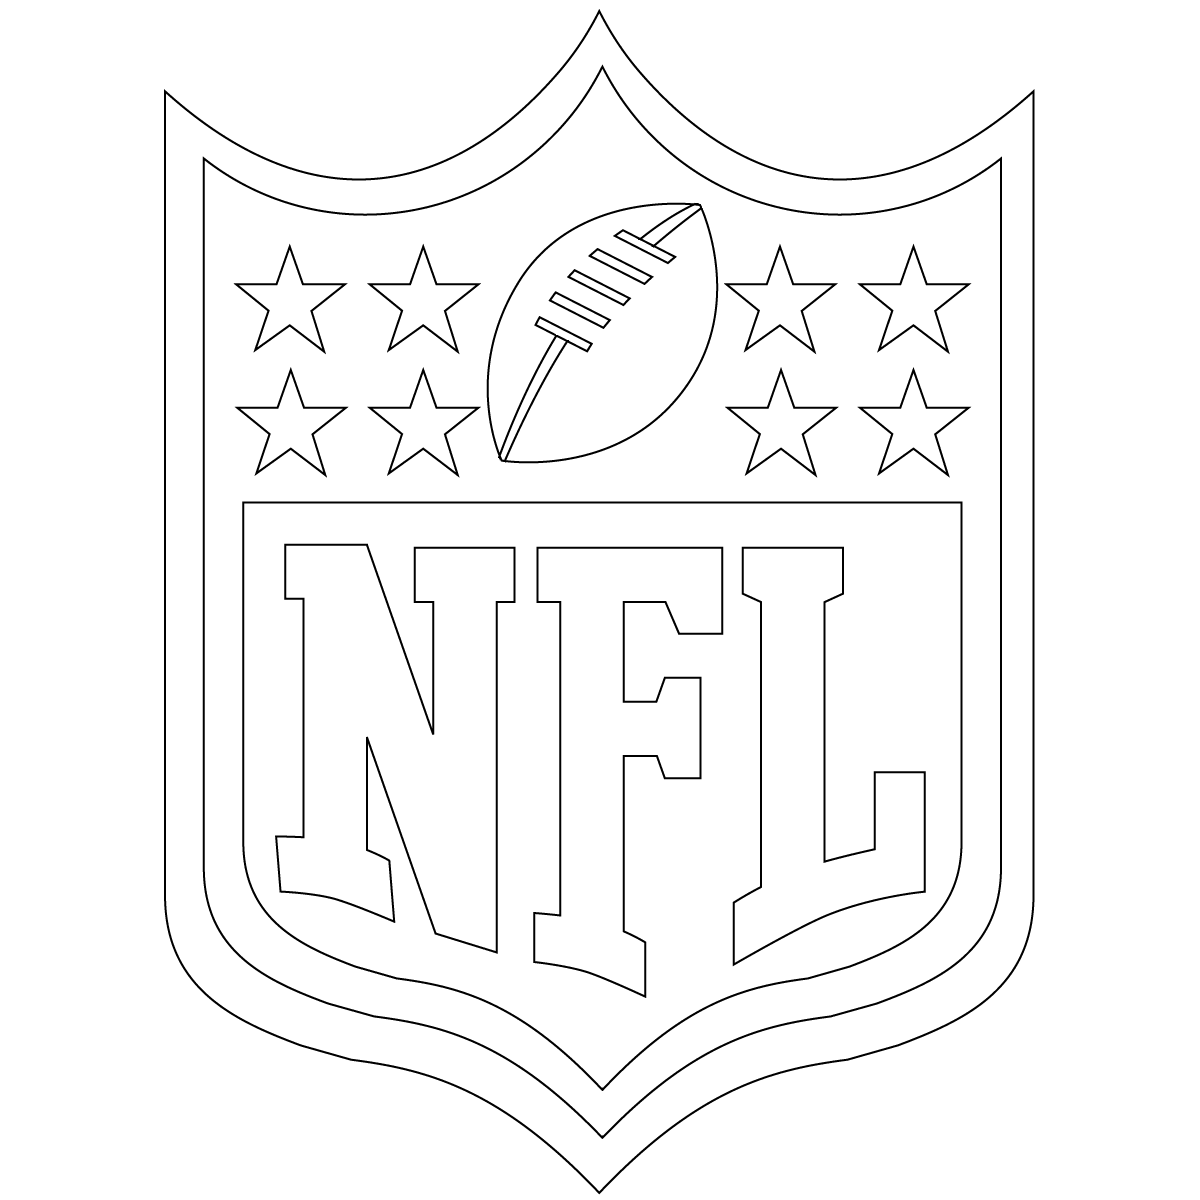 coloring pages of football teams girls soccer coloring girls soccer free women sports of pages coloring football teams